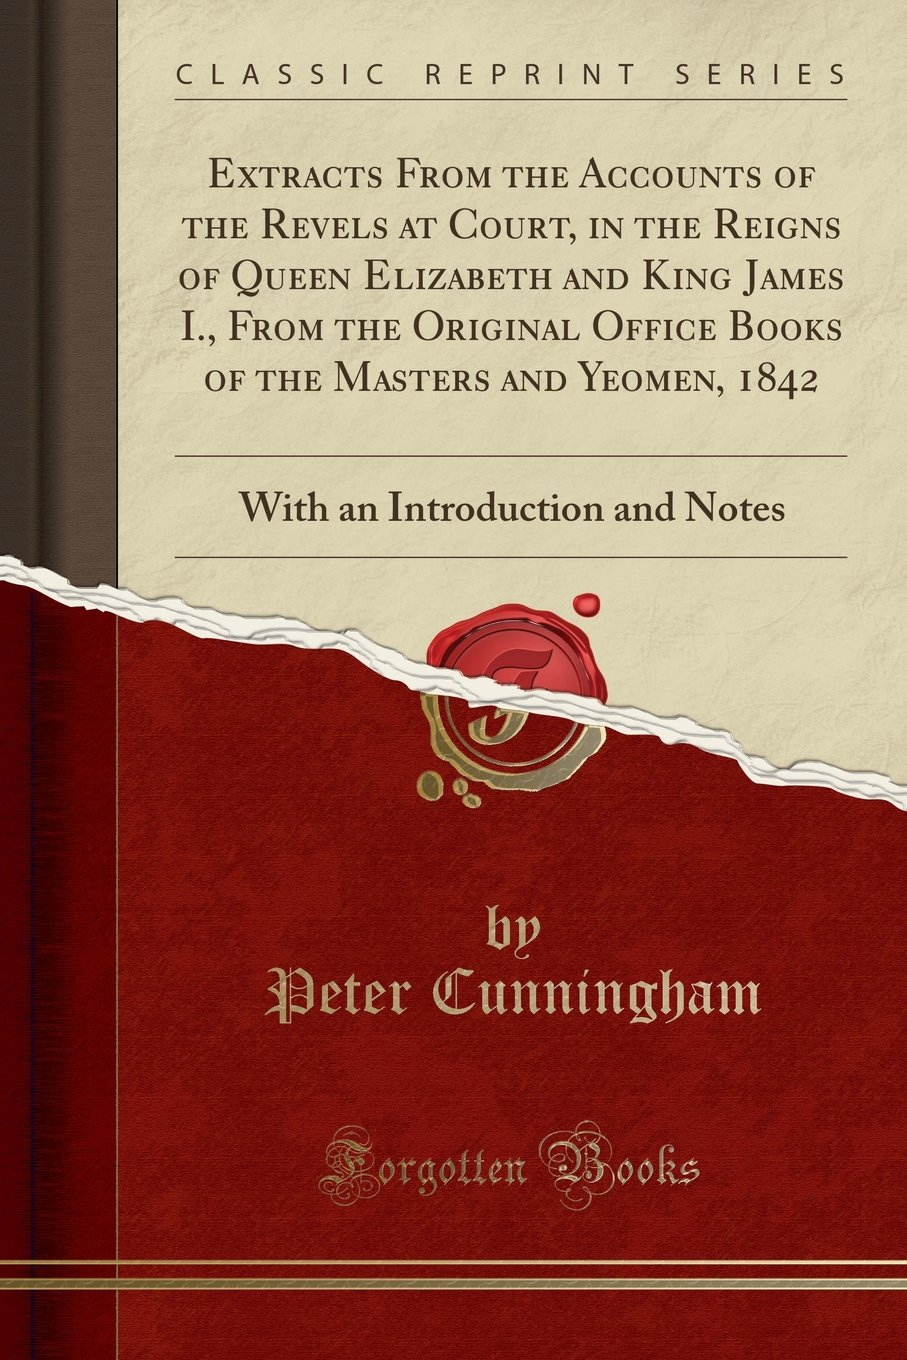 Download Extracts From the Accounts of the Revels at Court, in the Reigns of Queen Elizabeth and King James I., From the Original Office Books of the Masters ... an Introduction and Notes (Classic Reprint) pdf